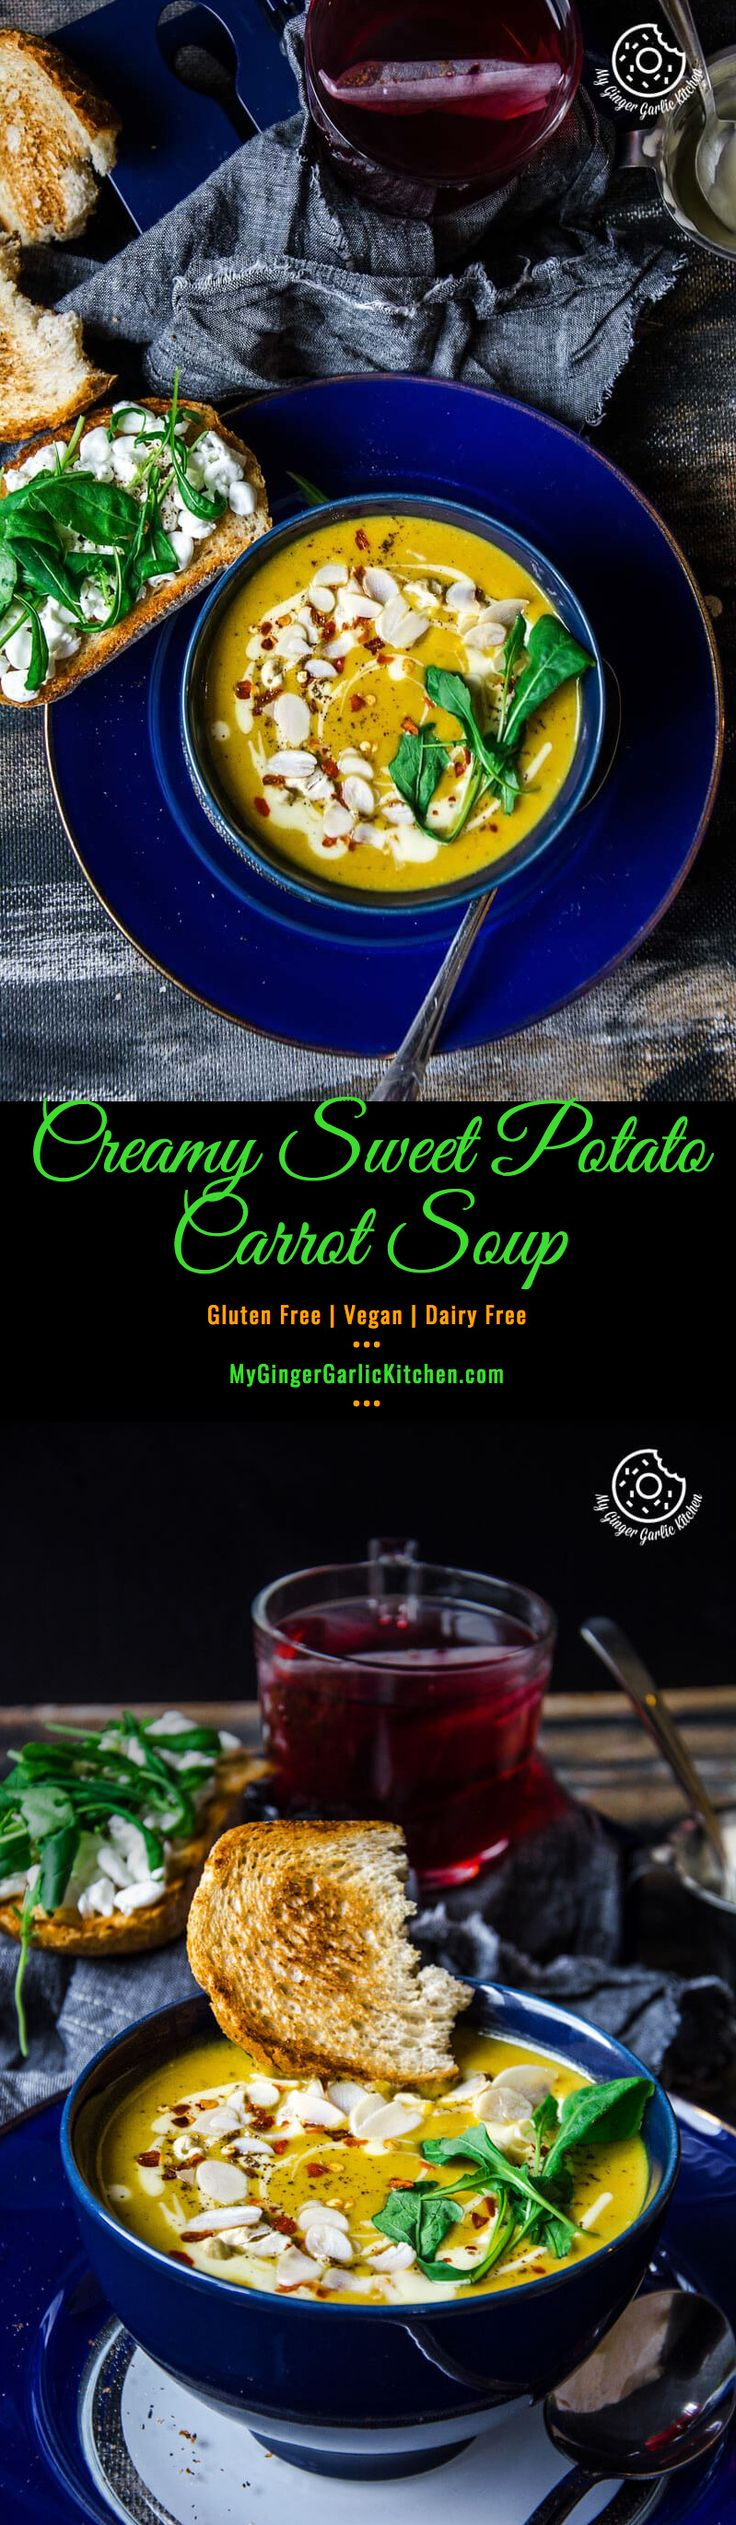 Creamy Sweet Potato Carrot Soup | A warming vegan, gluten-free soup with an appealing golden color.